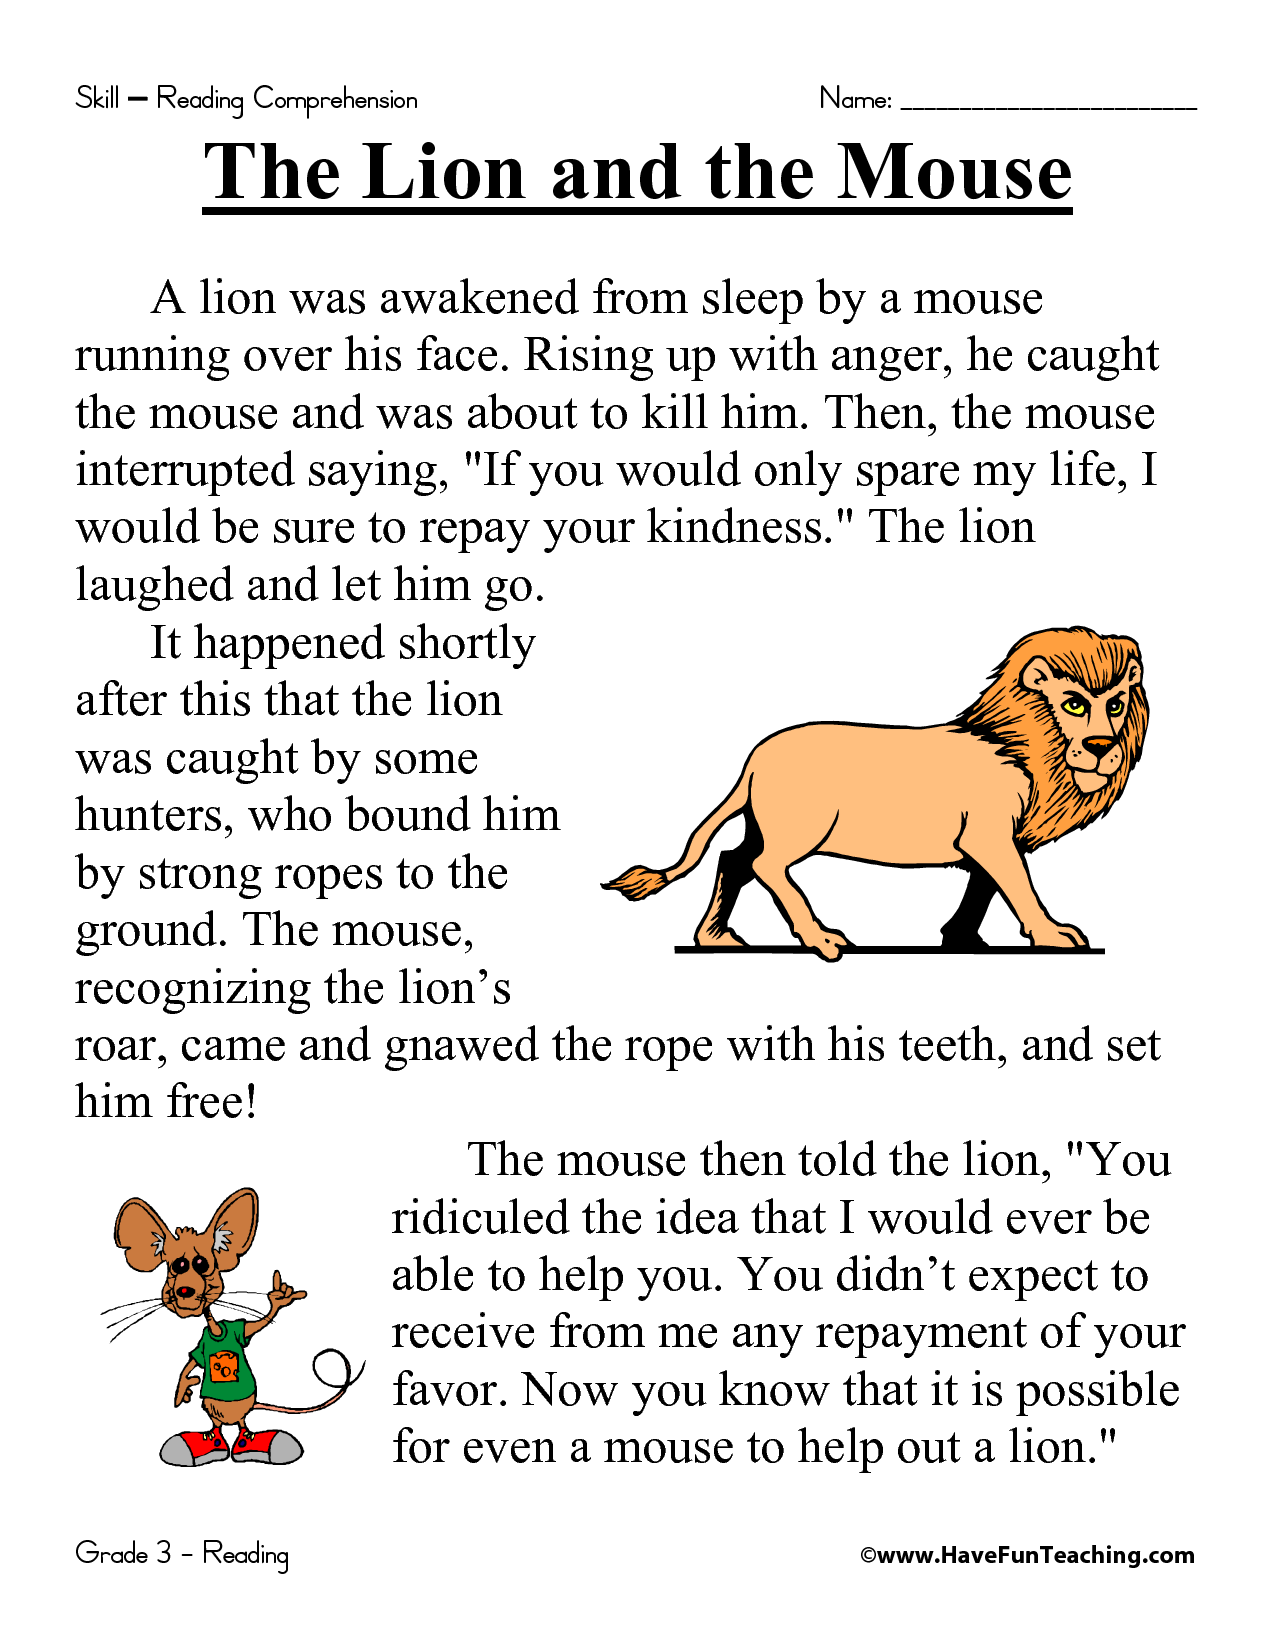 medium resolution of The Lion an the mouse   Third grade reading comprehension